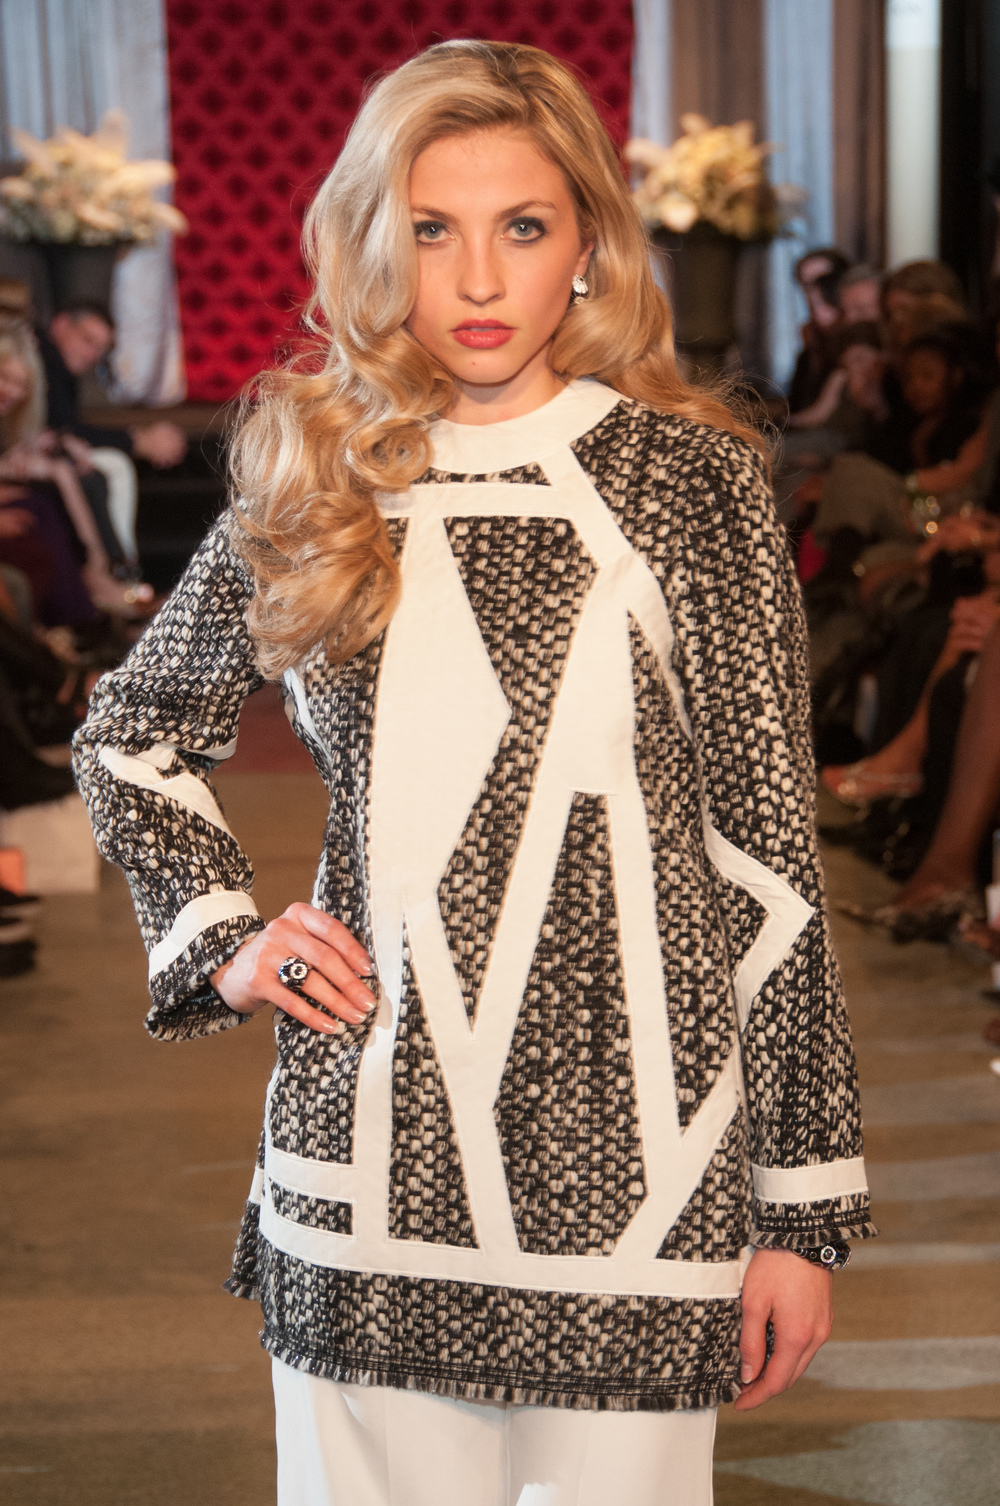 Run_Up_Runway_Featuring_Lyle_Husar_Designs_Brookfield14.jpg